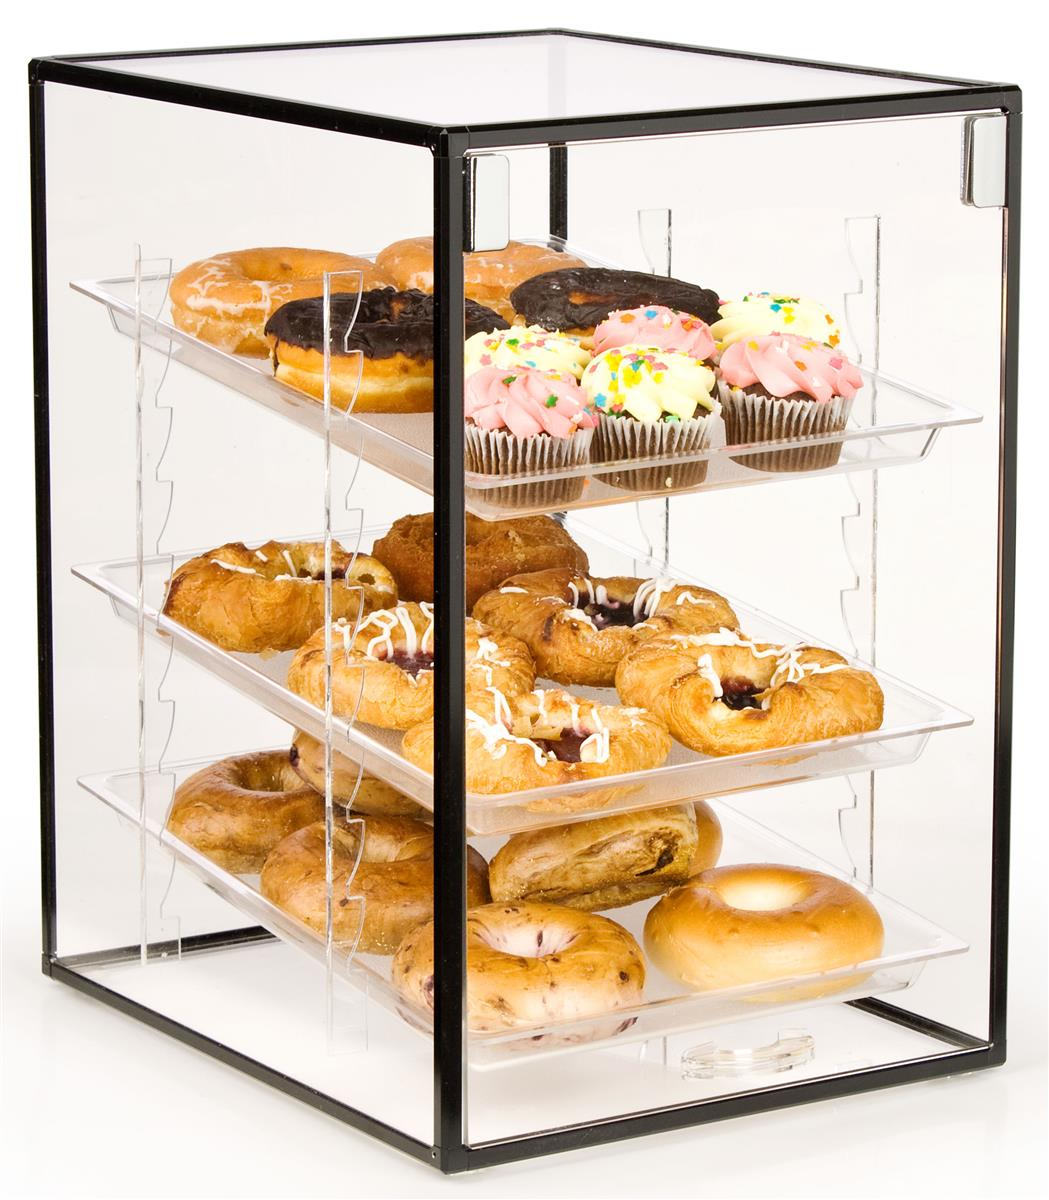 Countertop Bakery Case Countertop Bakery Display Case Hinged Door Display